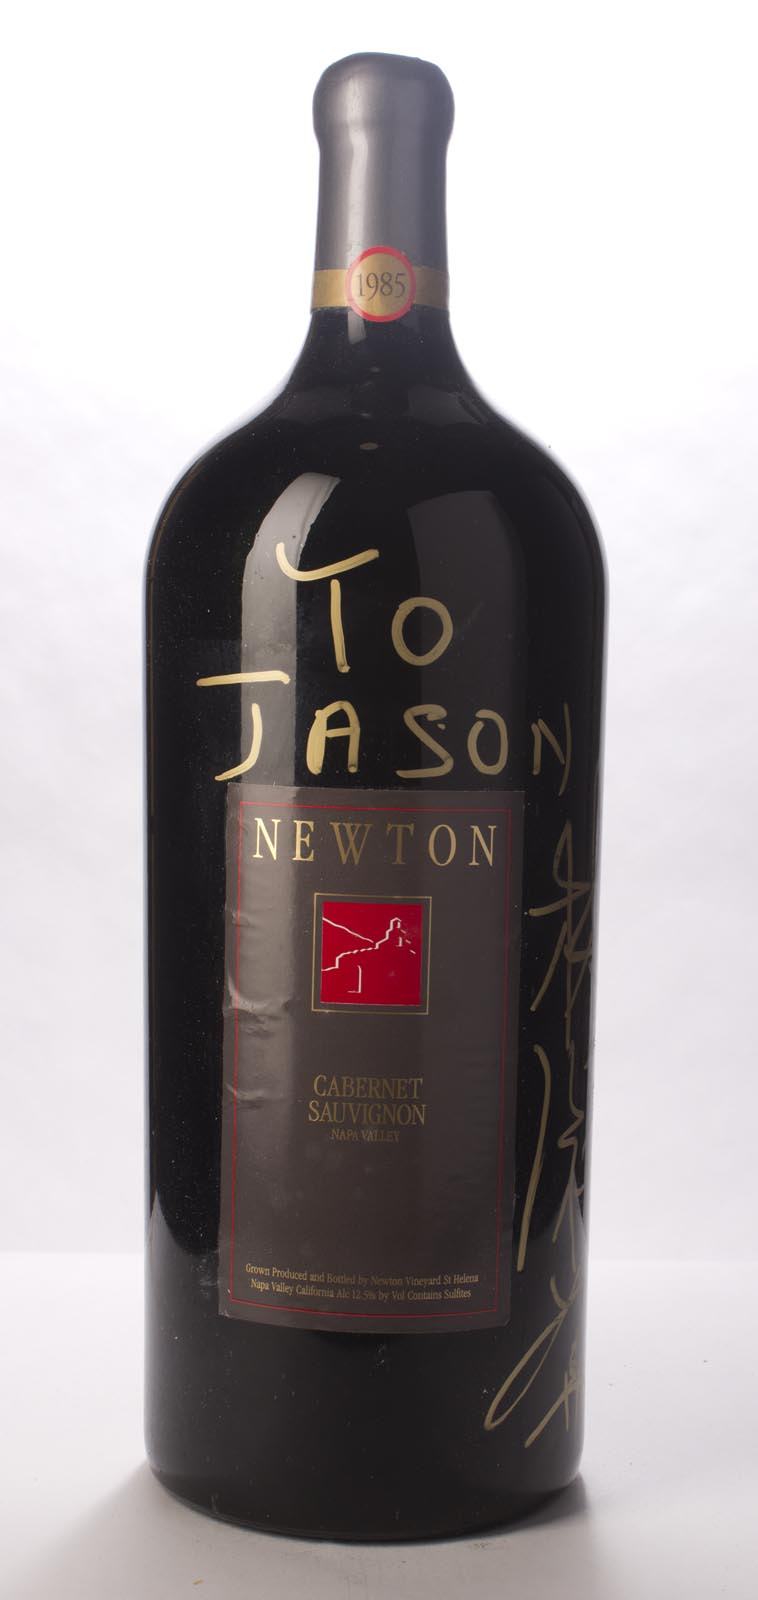 Newton Cabernet Sauvignon Napa Valley Unfiltered 1985, 6L () from The BPW - Merchants of rare and fine wines.